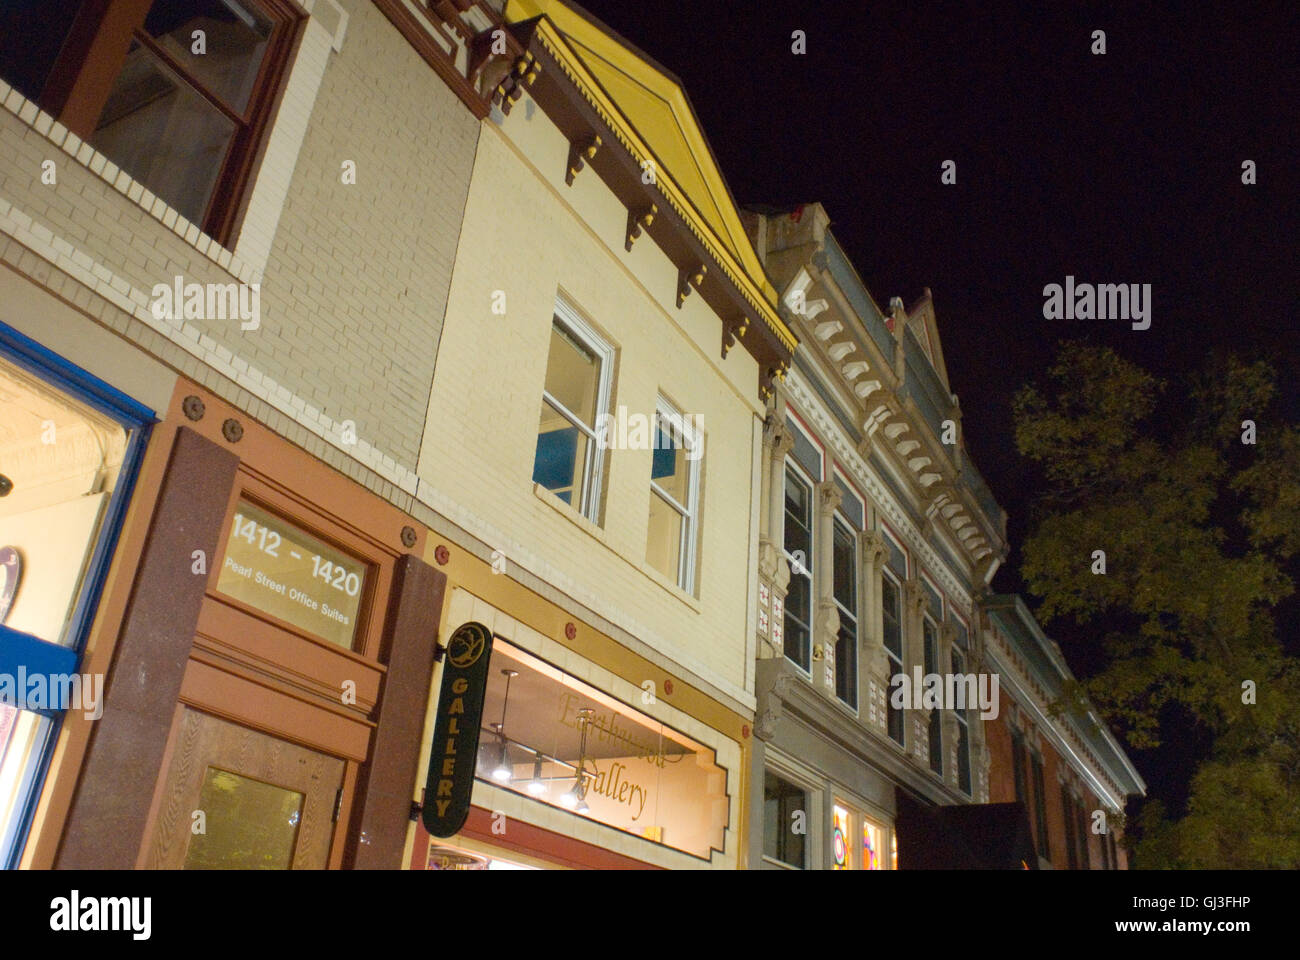 Pearl Street Mall Buildings at night - Stock Image